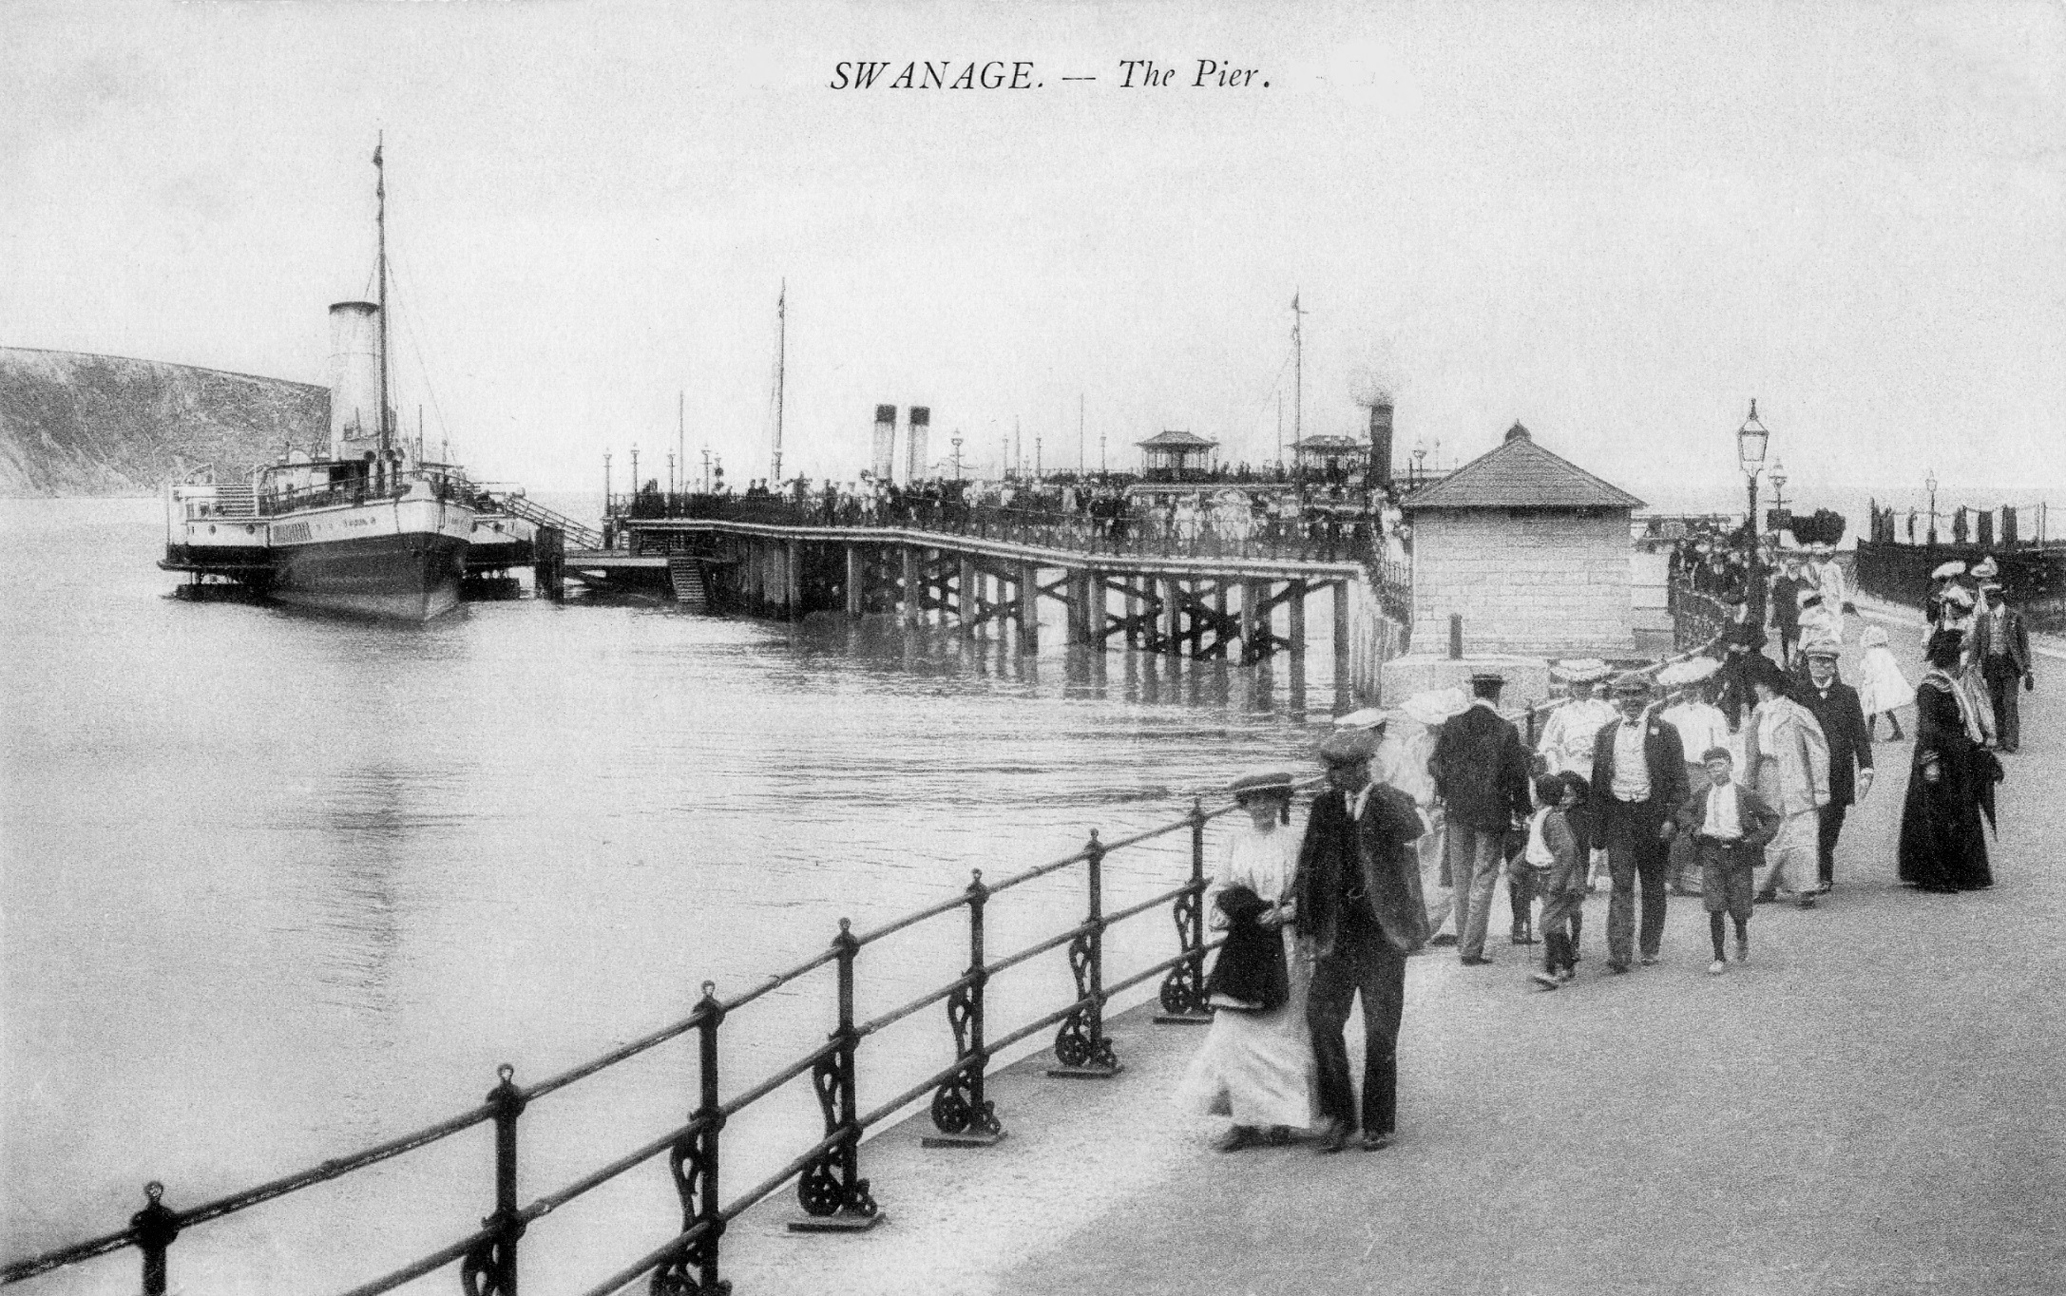 Swanage Pier History Tours